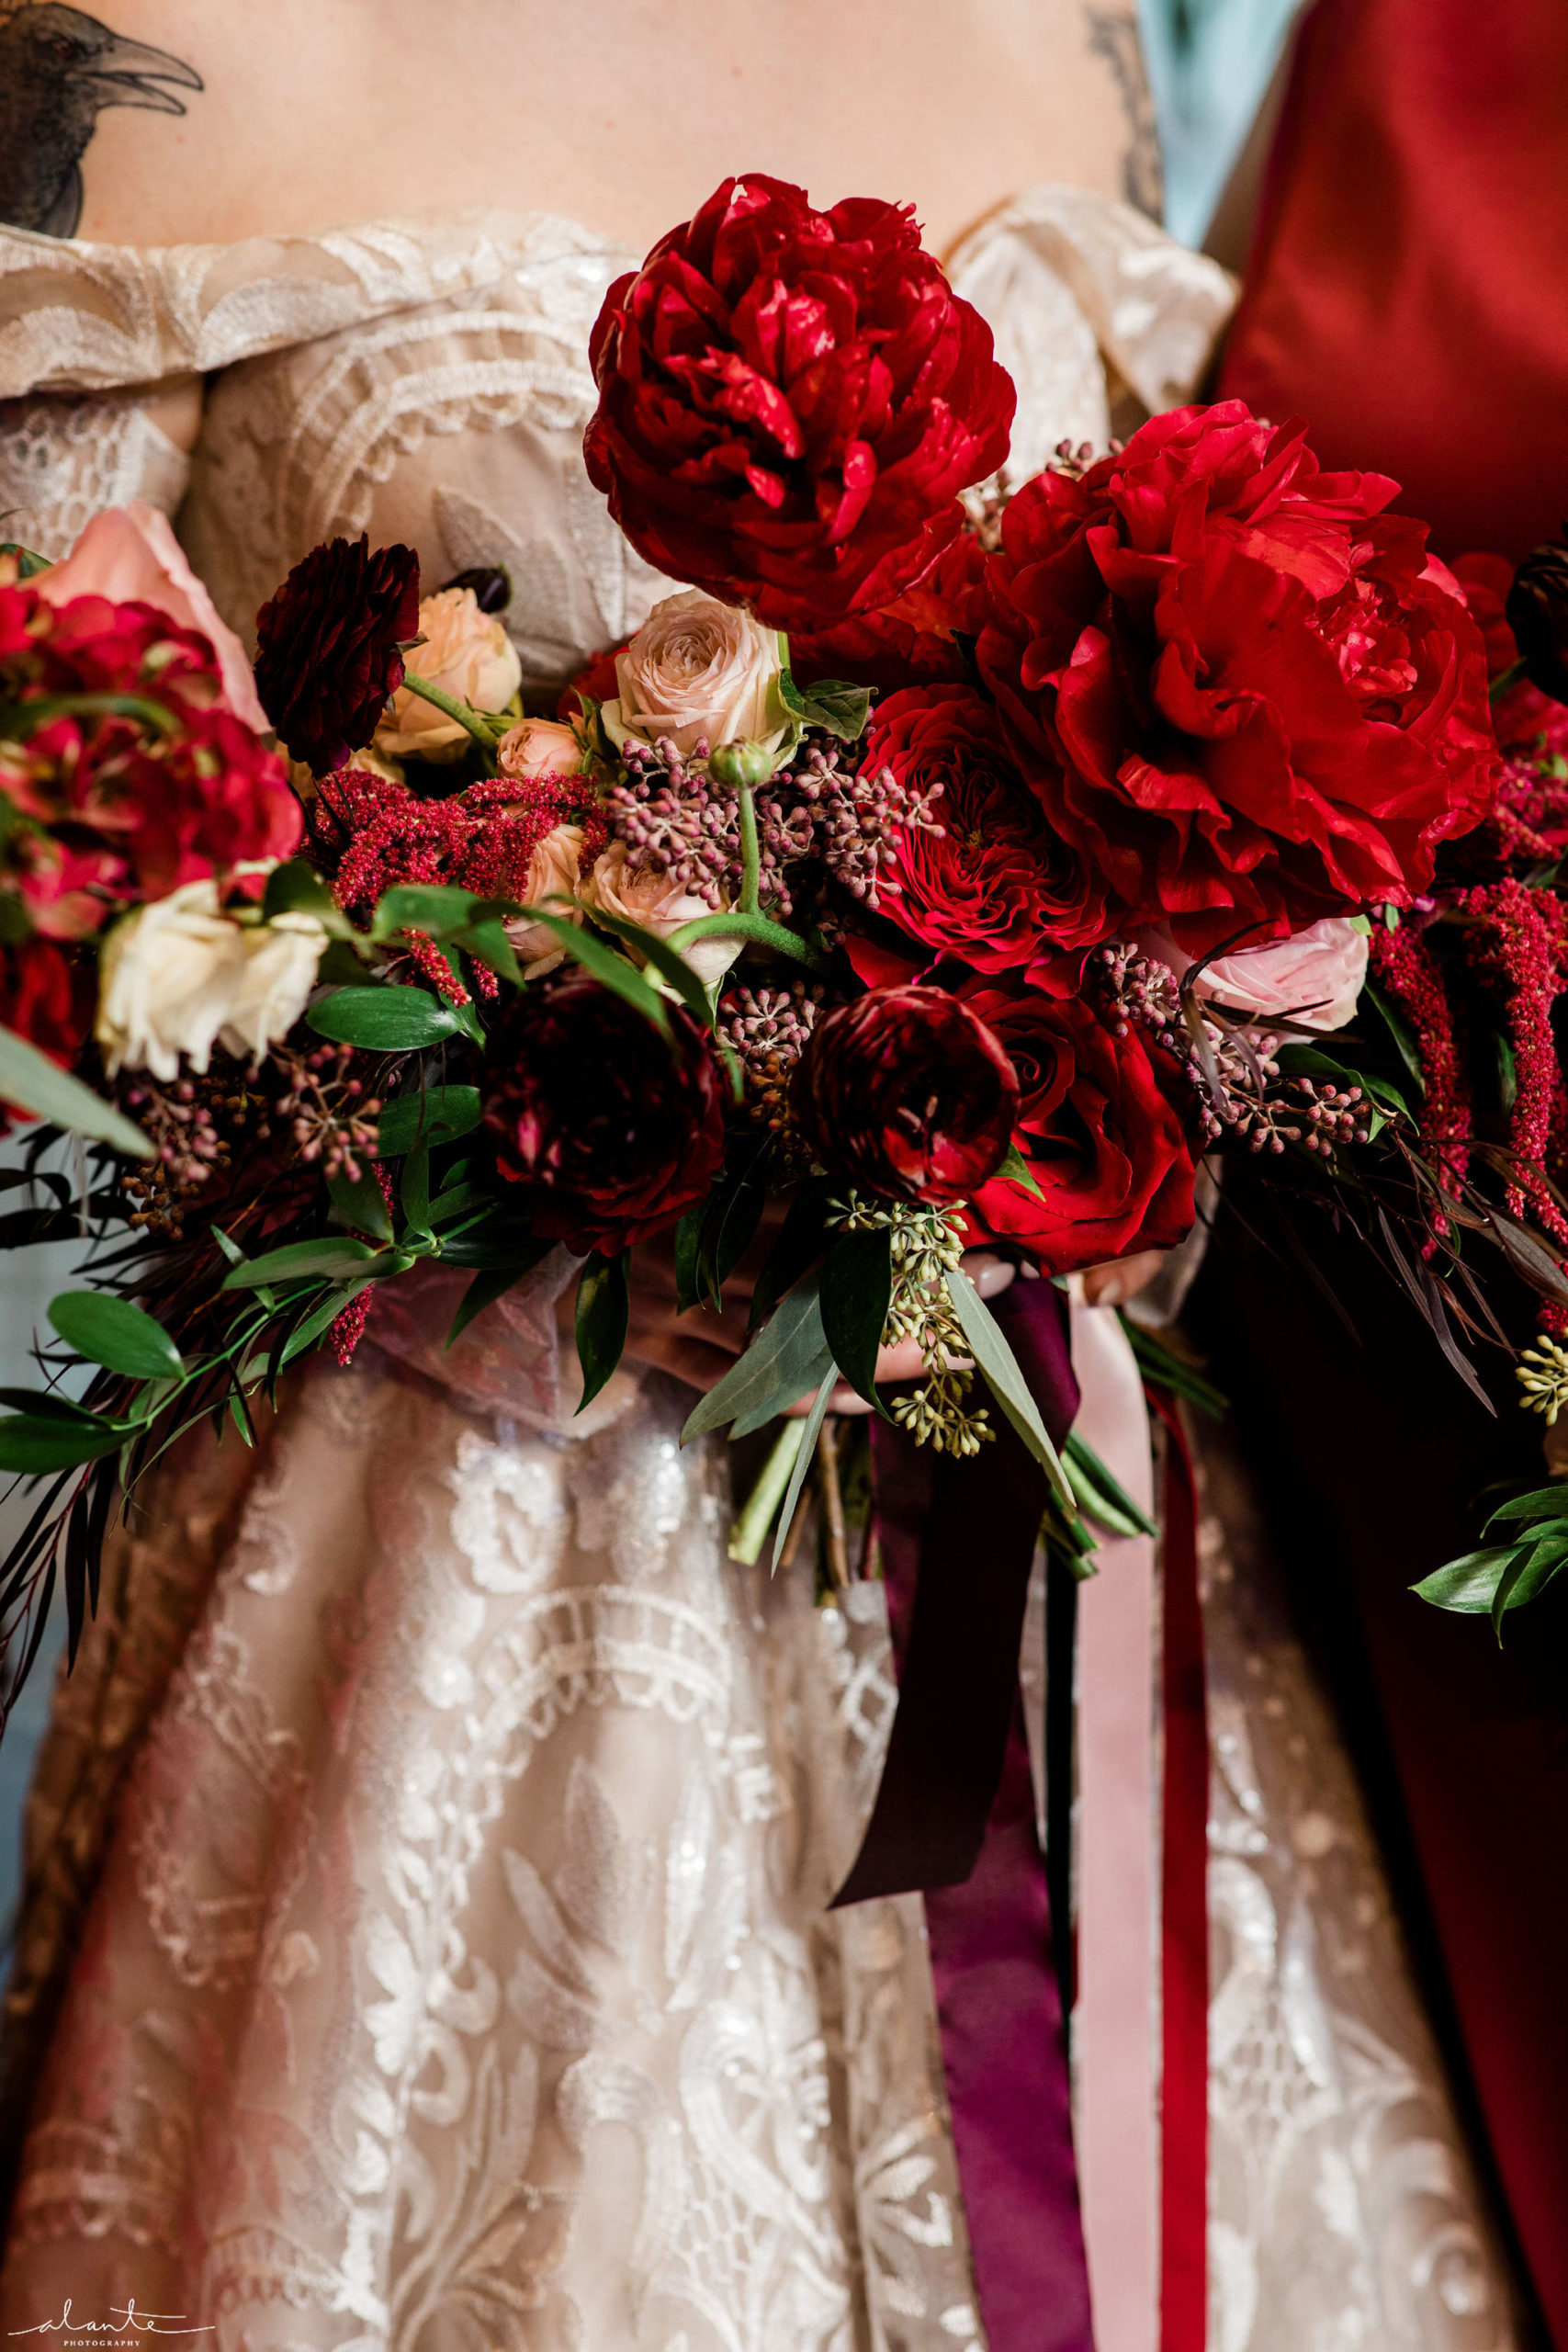 Burgundy and pink ribbon streamers cascade from a red peony bridal bouquet designed by Flora Nova Design